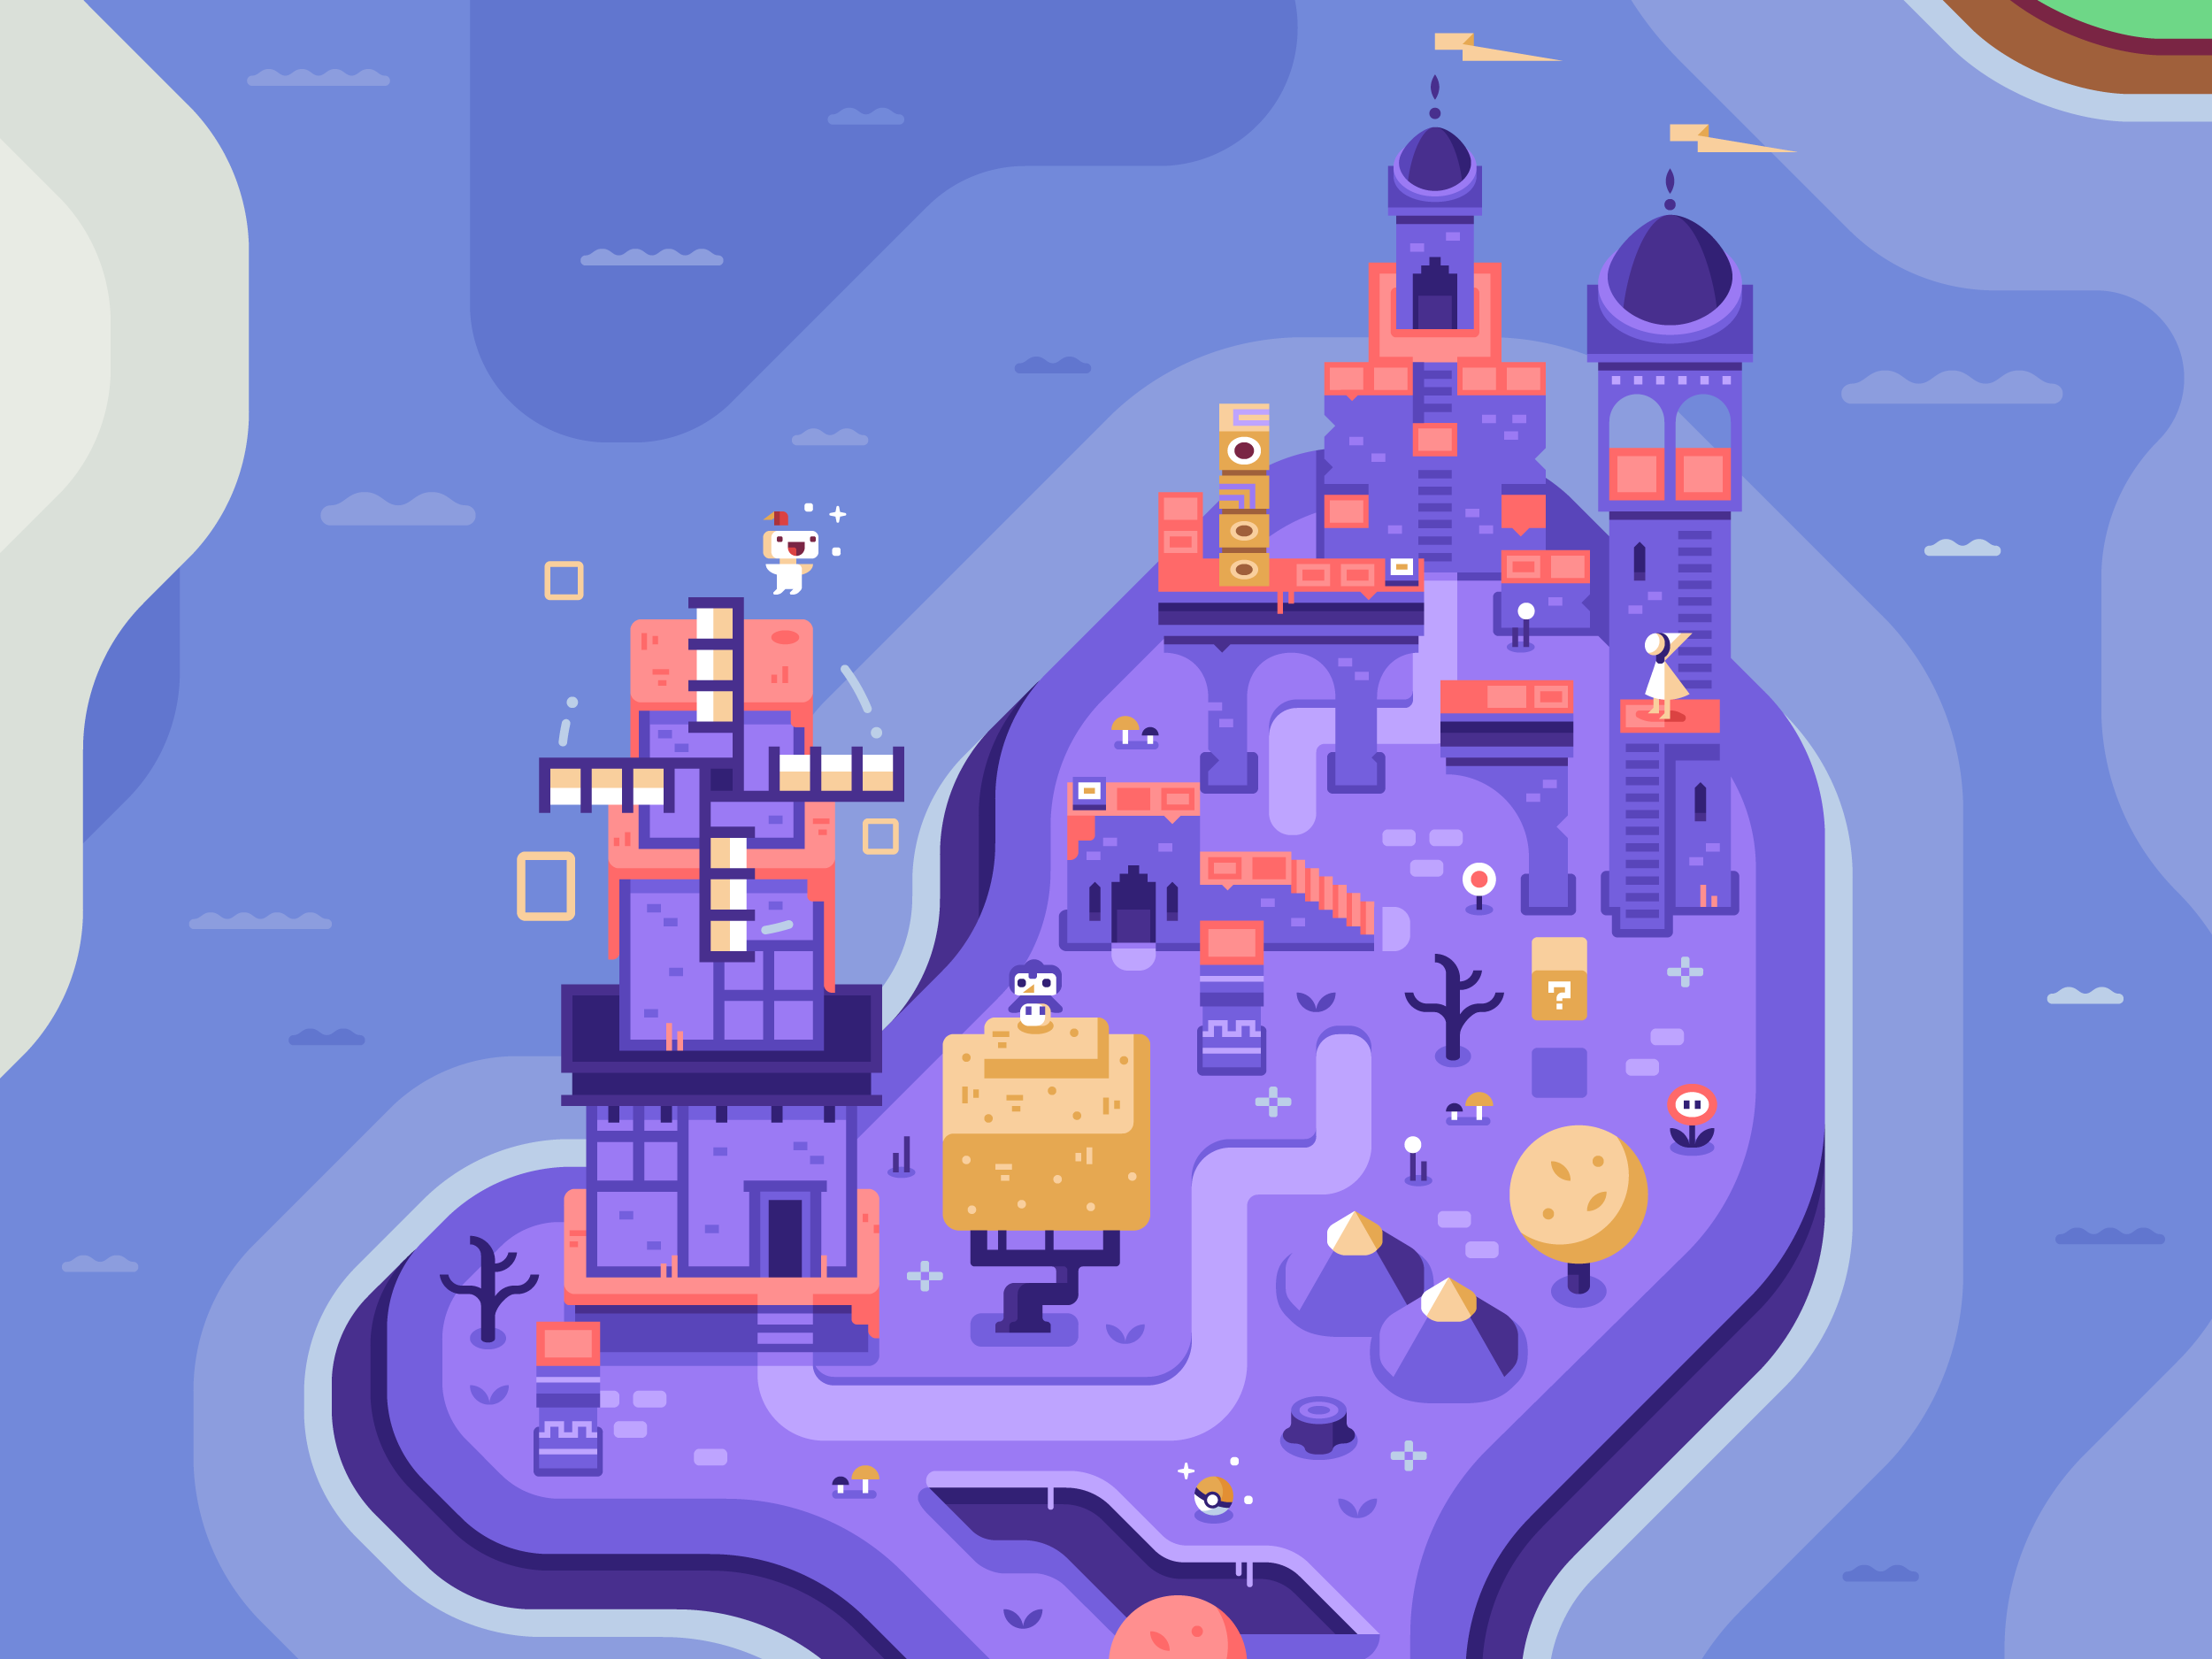 Monument Valley and Fez, Discord Office Mural illustrations by Matt Anderson and Canopy Design and Illustration